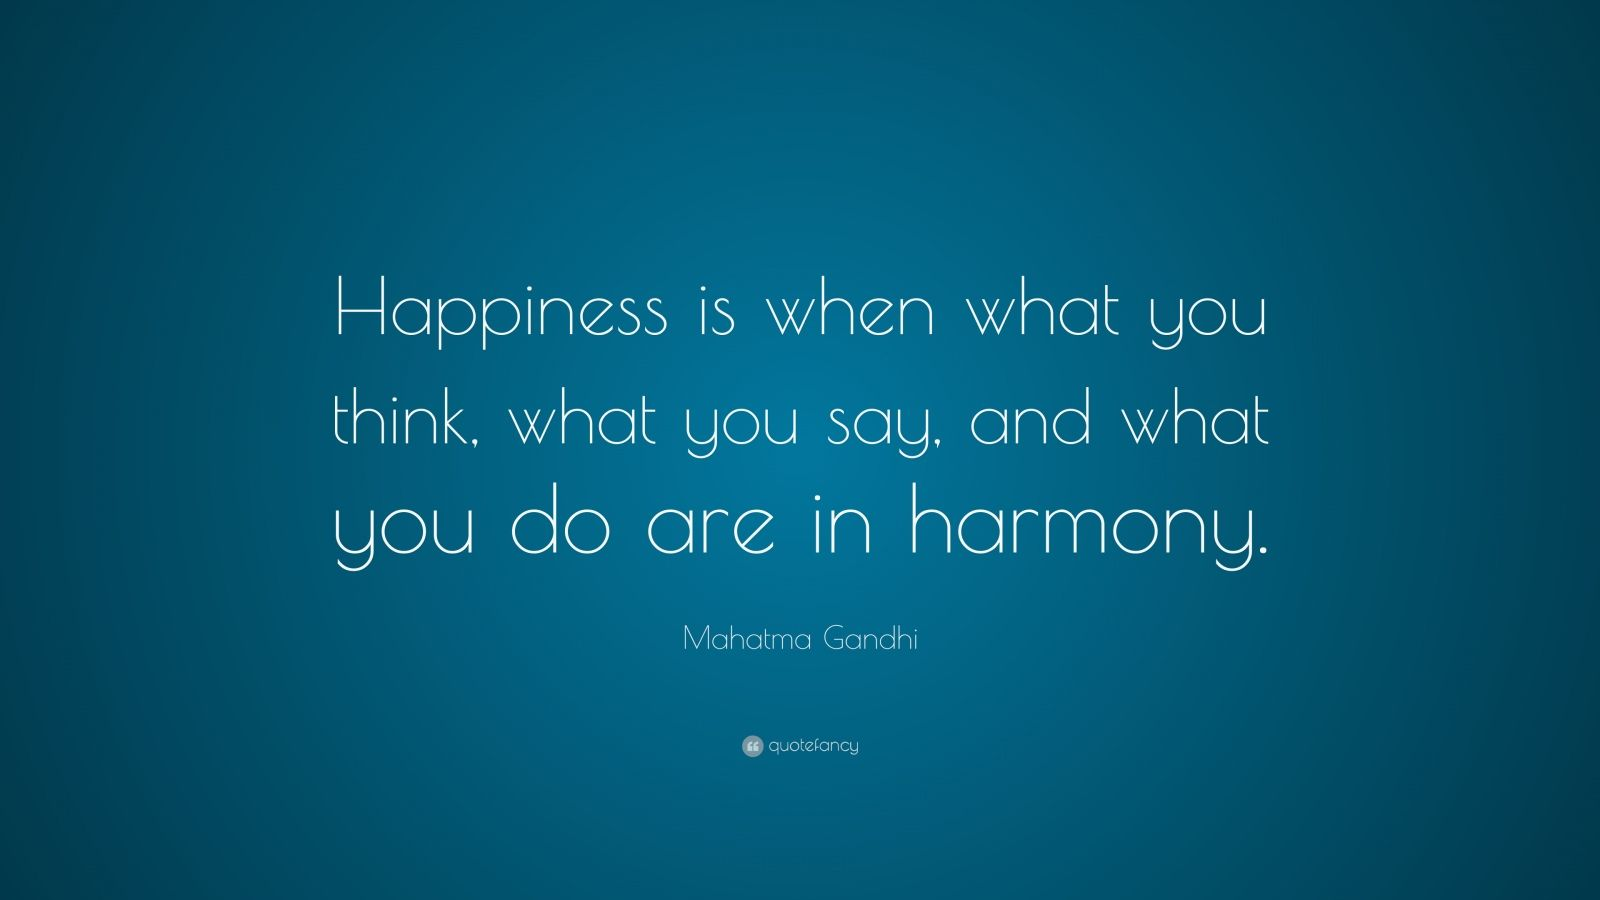 Gandhi Happiness Is When What You Think